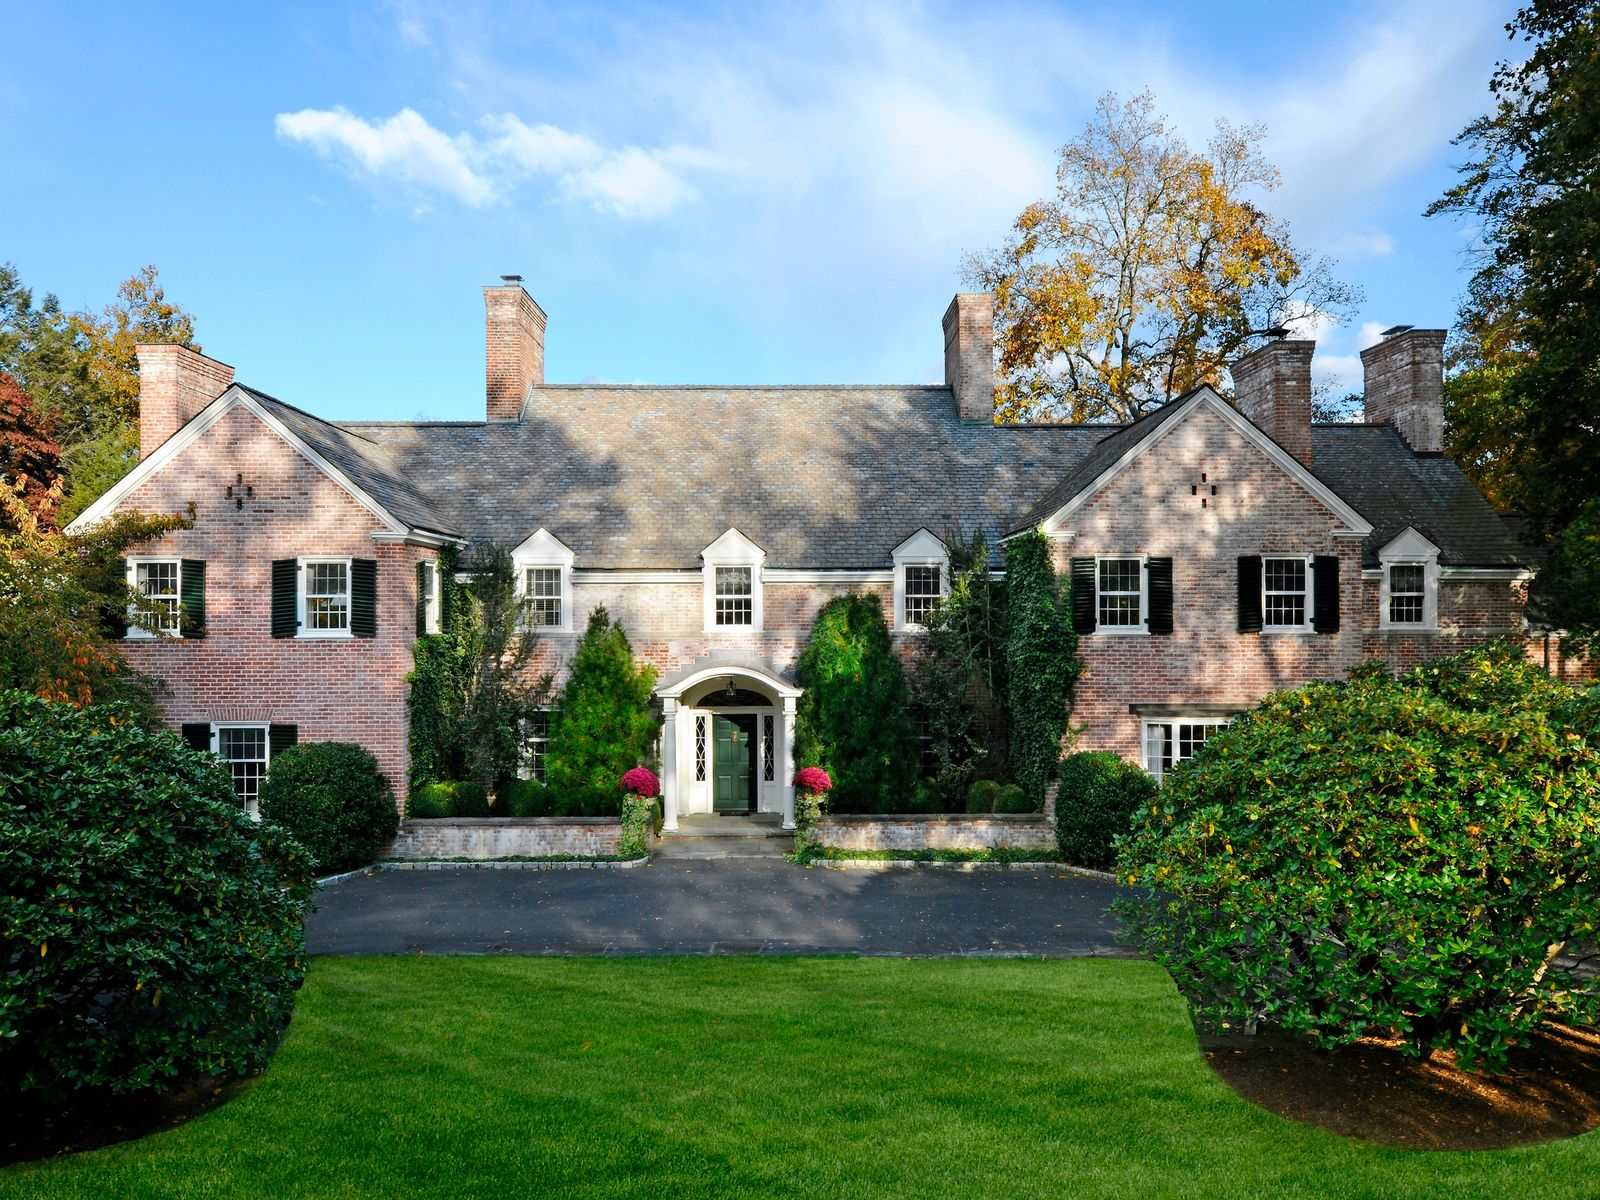 Meadowcroft, Greenwich CT Single Family Home - Greenwich Real Estate